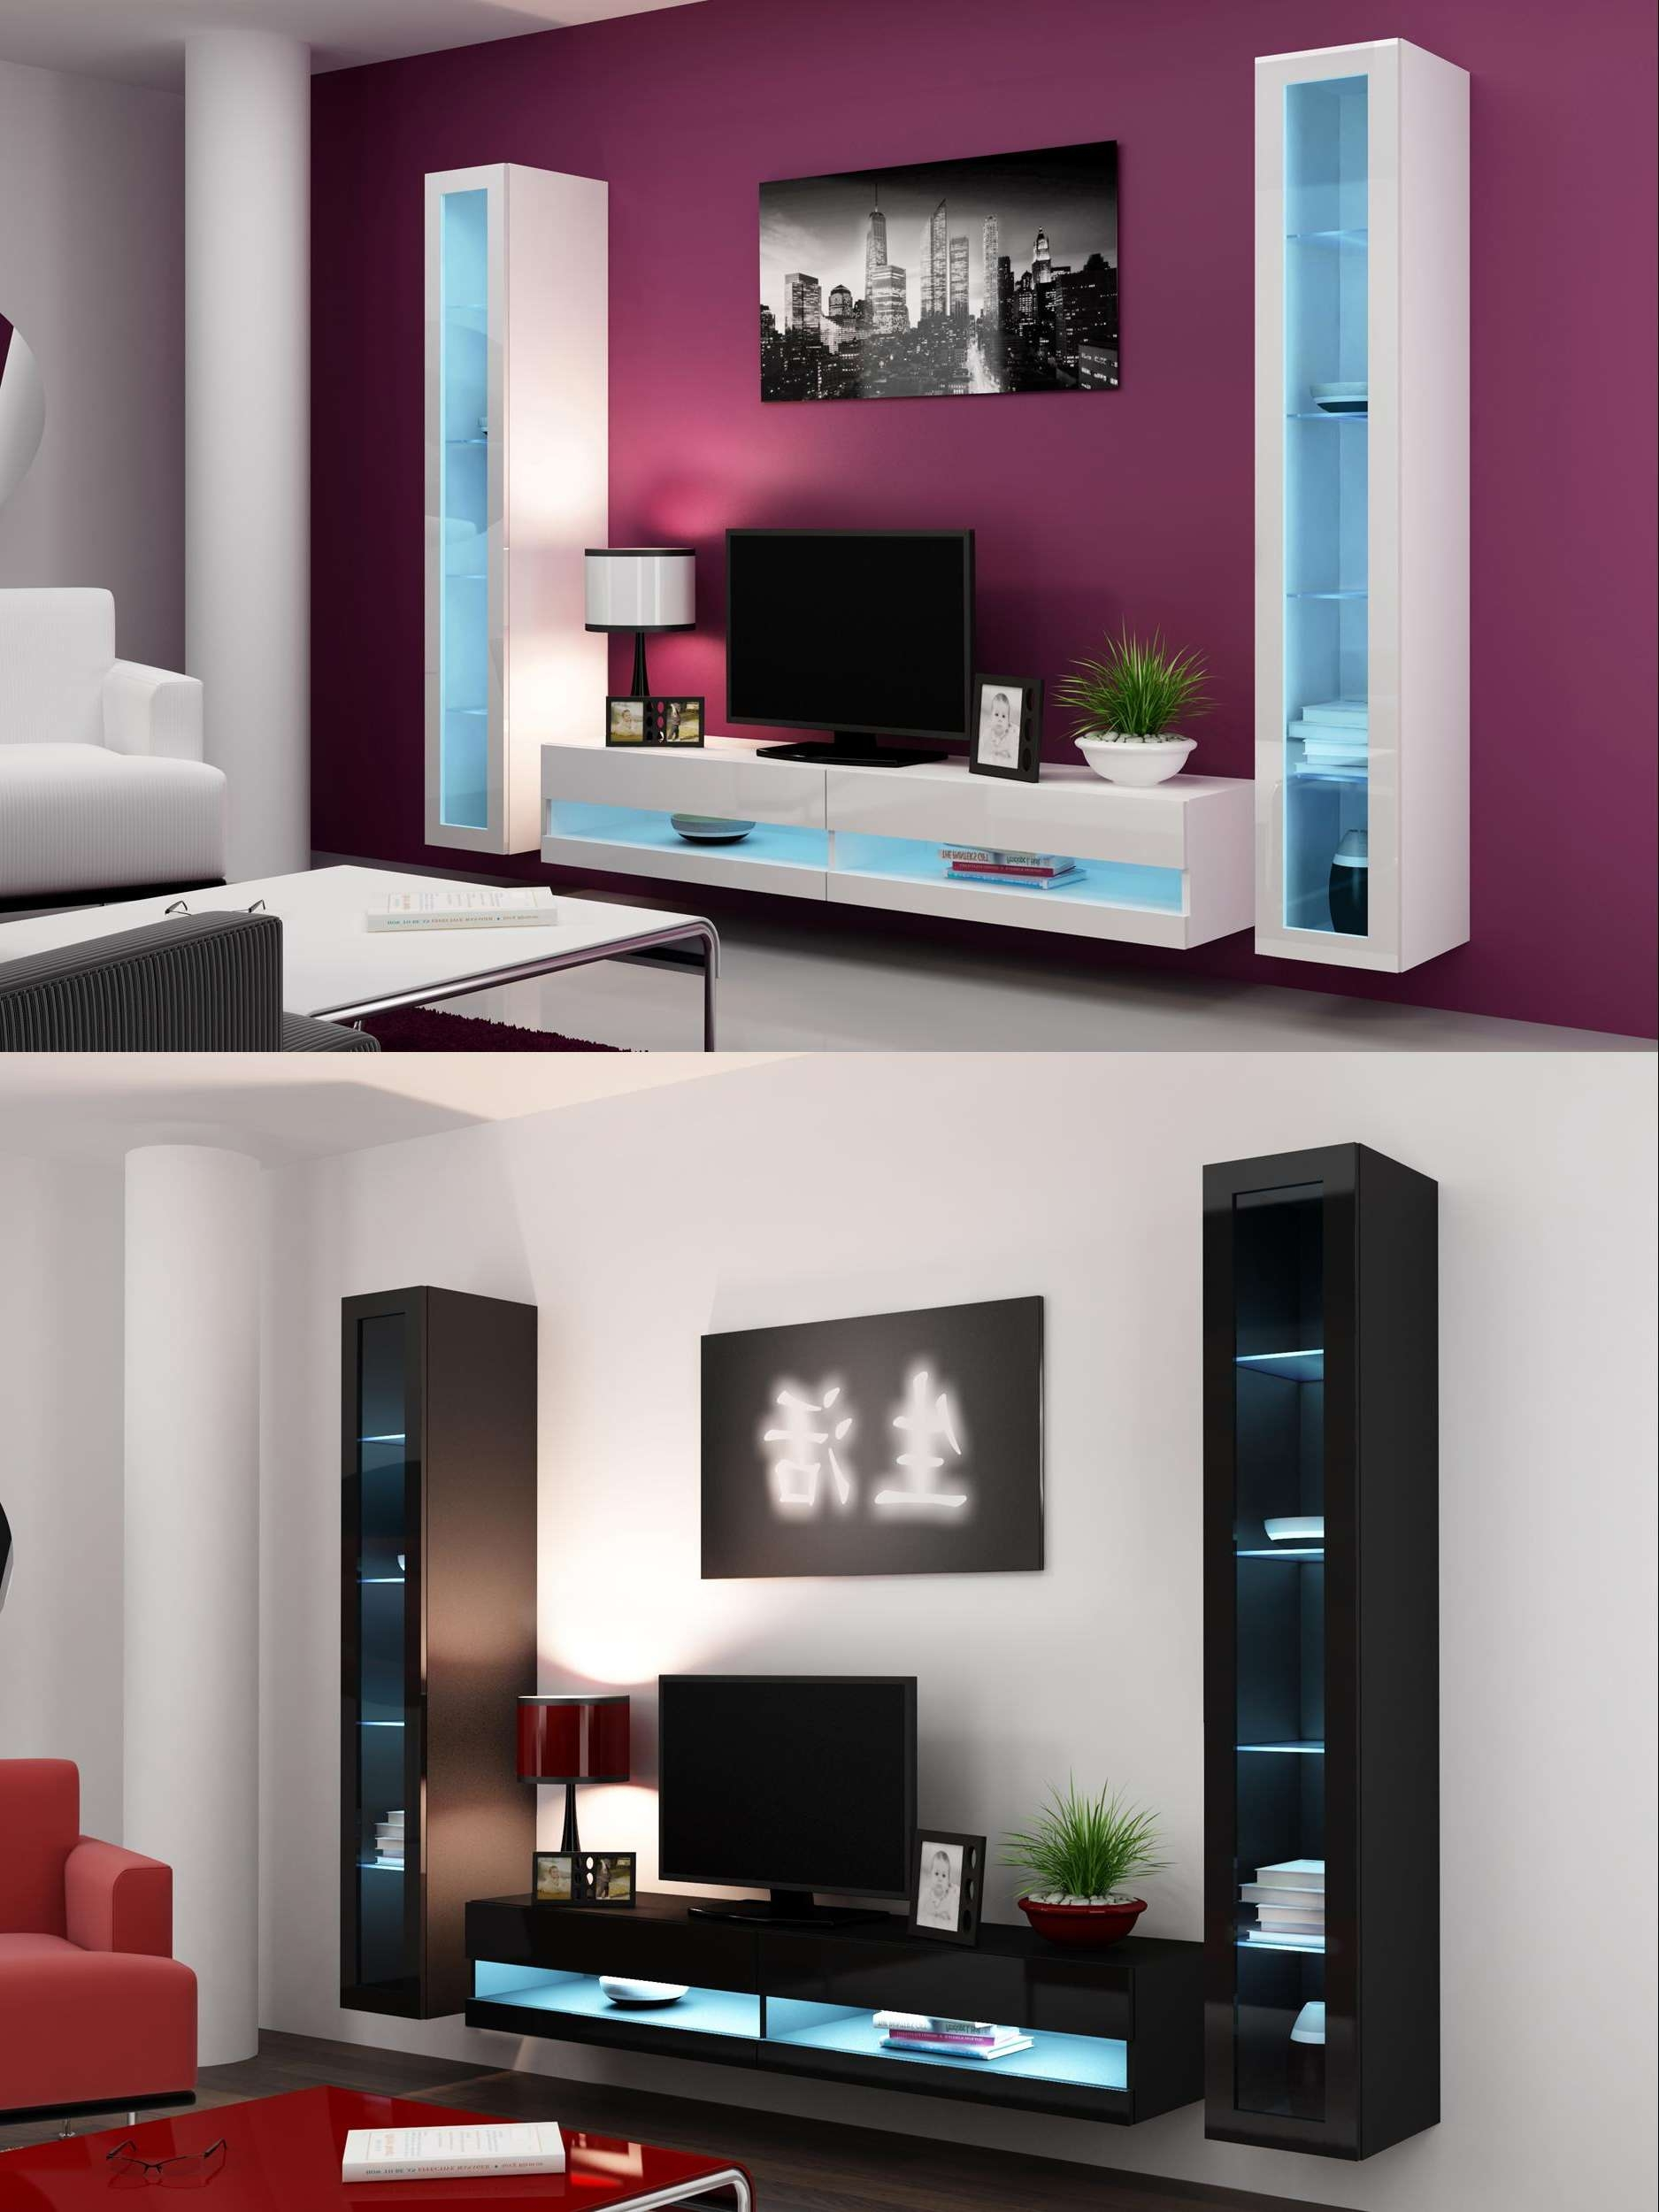 High Gloss Living Room Set With Led Lights, Tv Stand, Wall Mounted Inside Wall Mounted Tv Cabinets For Flat Screens (View 5 of 20)